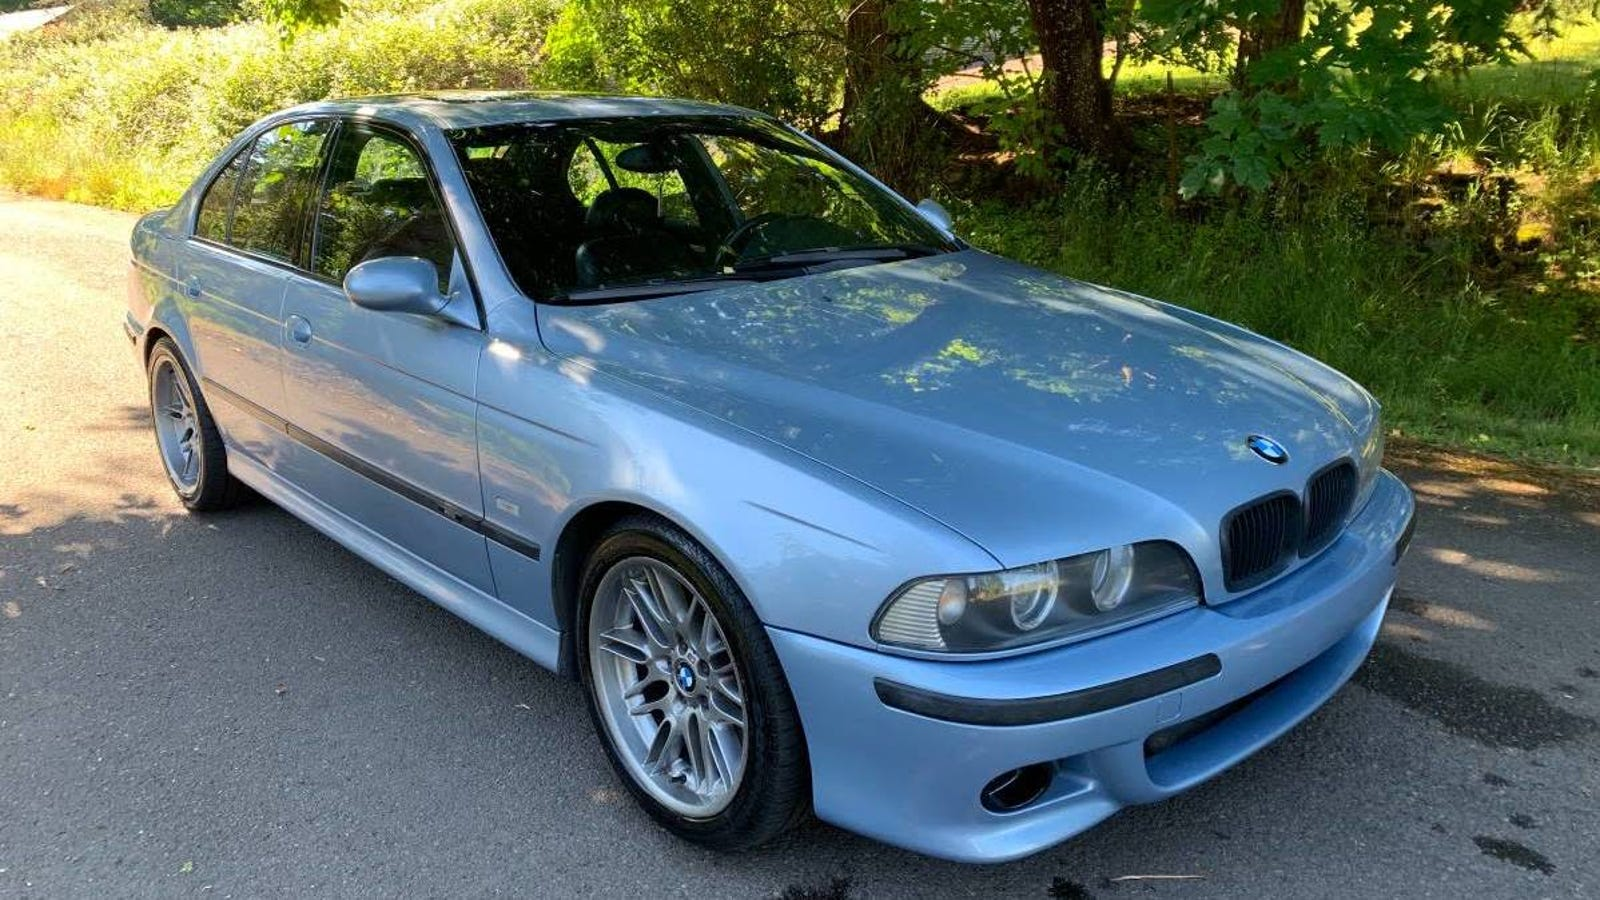 At $9,500, Could This Silverstone 2000 BMW M5 Be A Gold Standard?